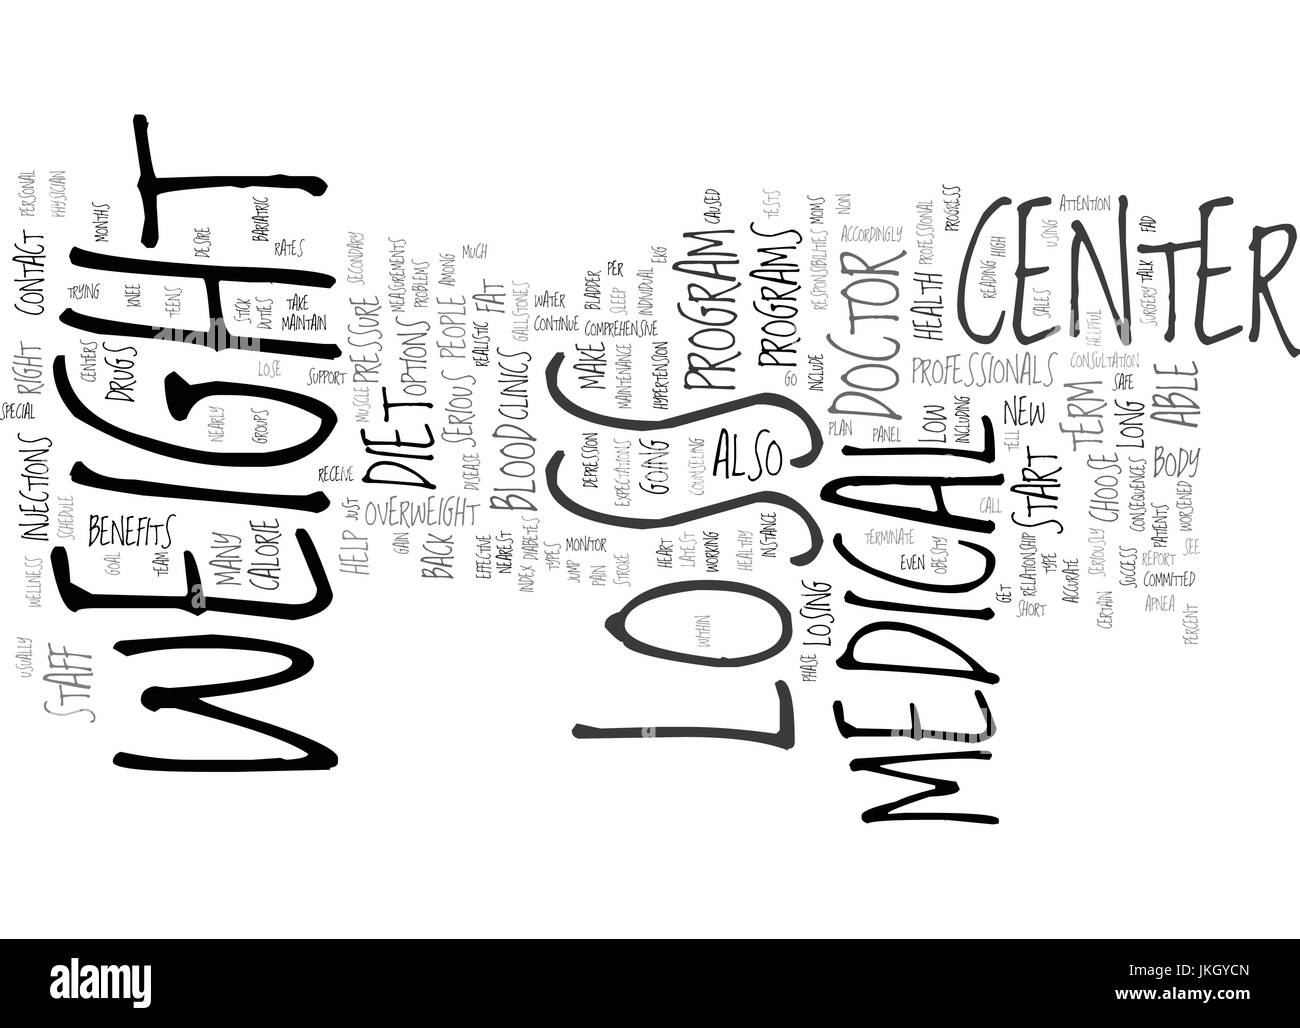 BENEFITS OF A MEMORY FOAM MATTRESS Text Background Word Cloud Concept - Stock Vector